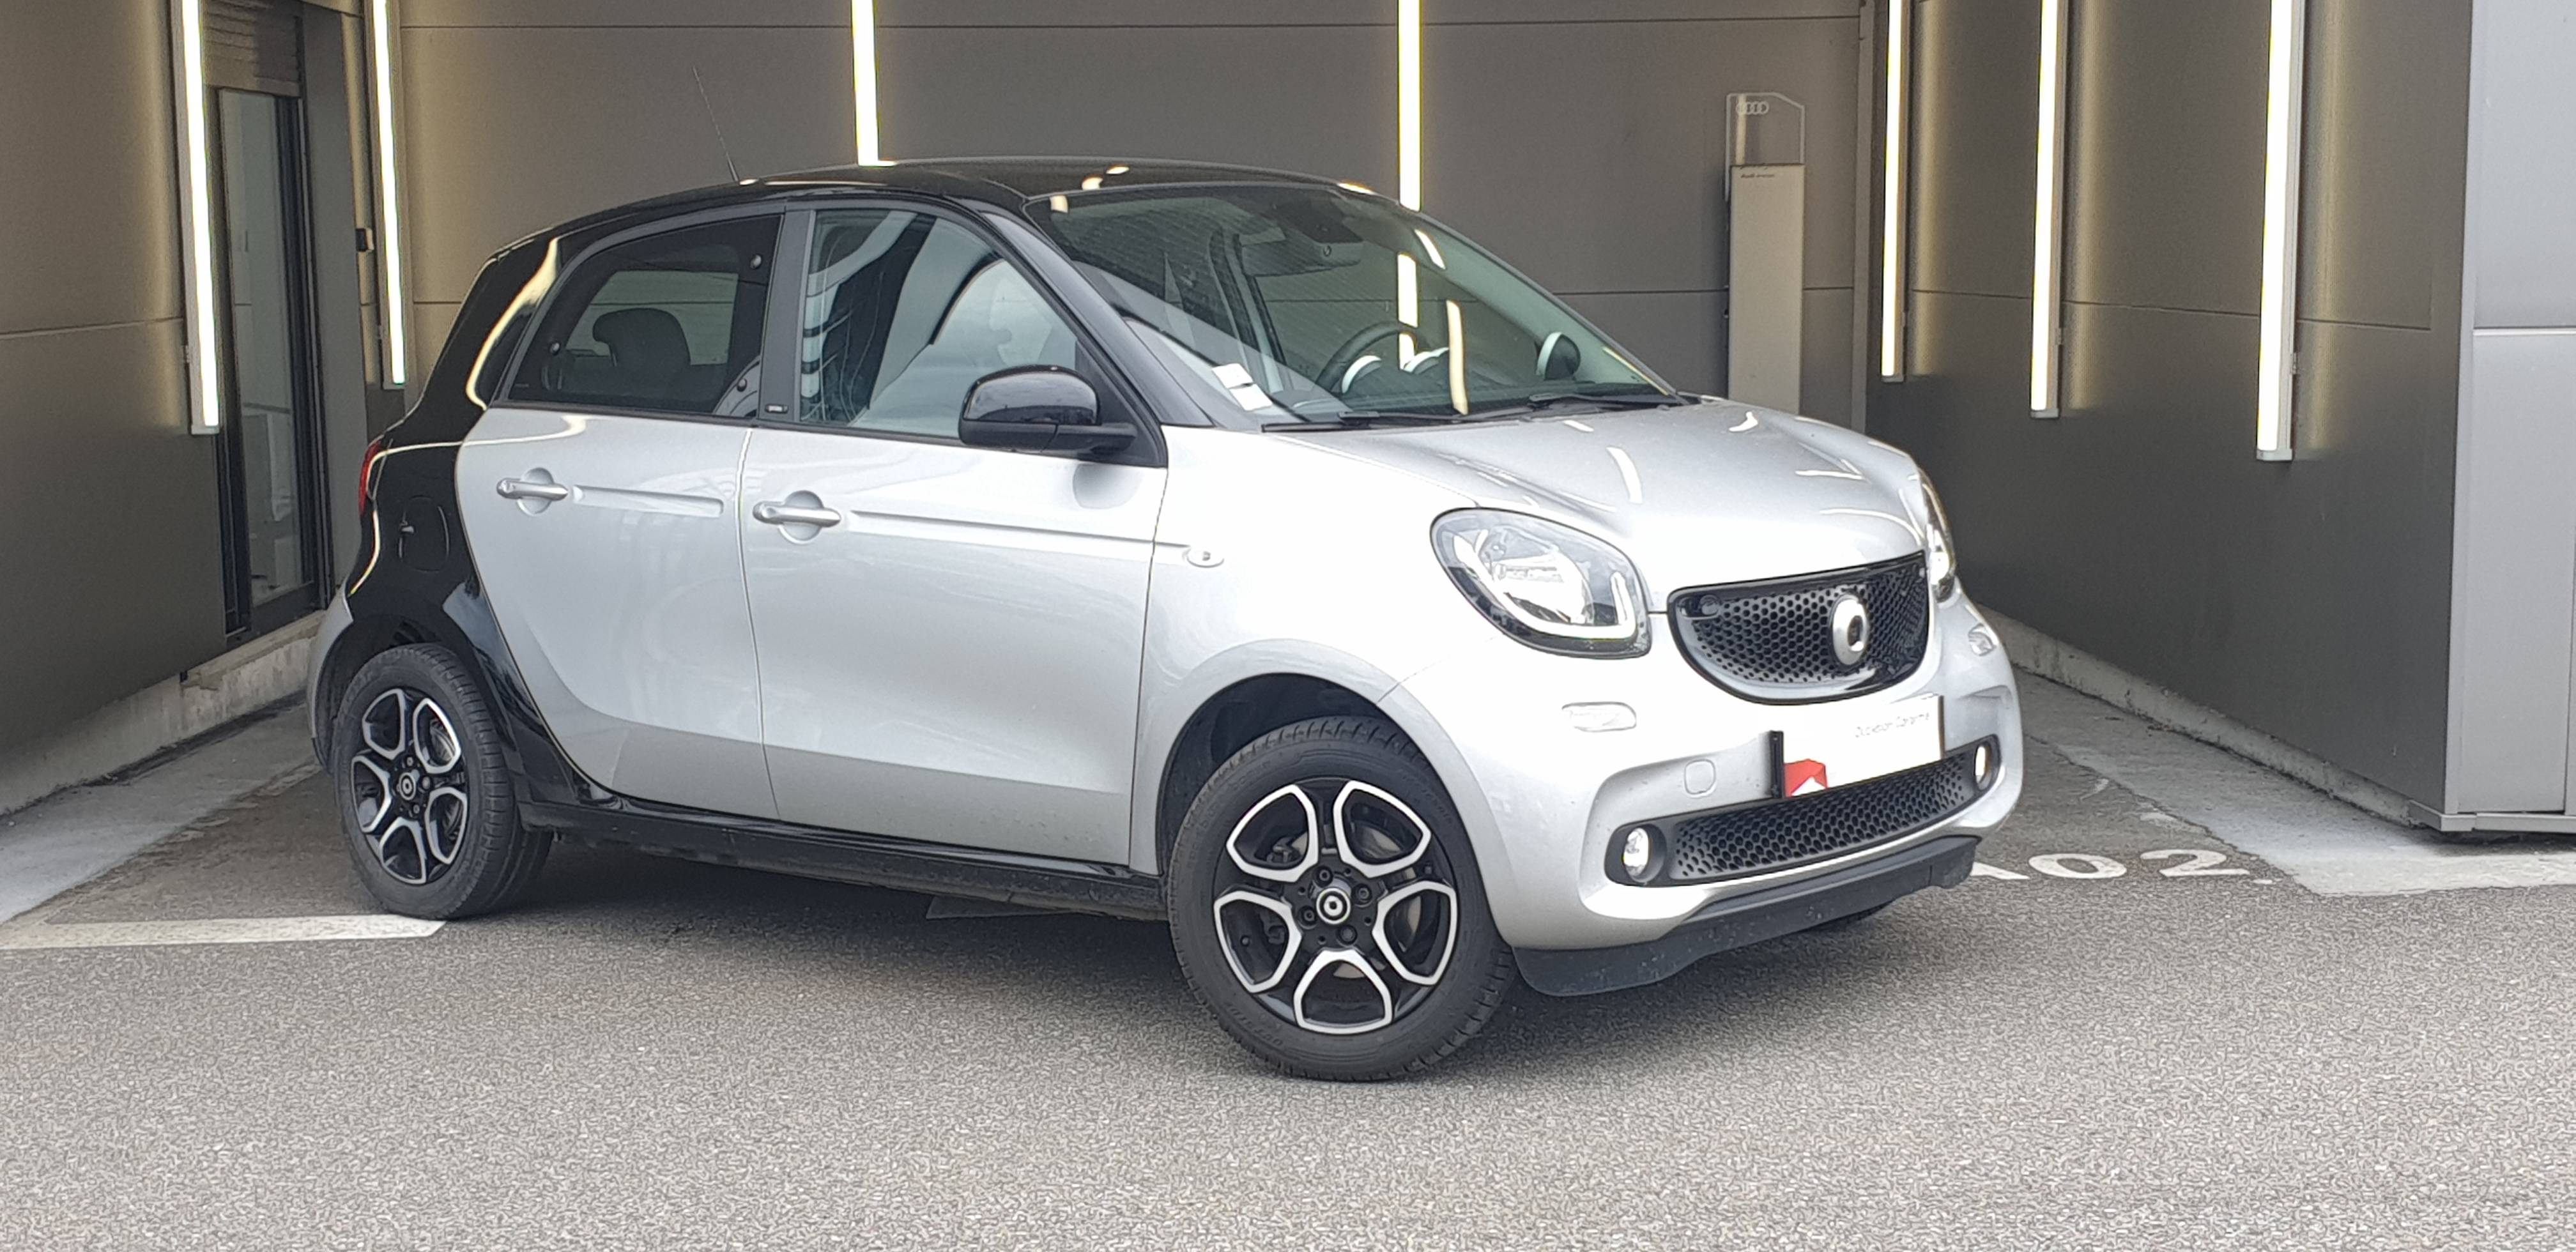 1 - Forfour 0.9 90 ch S&S